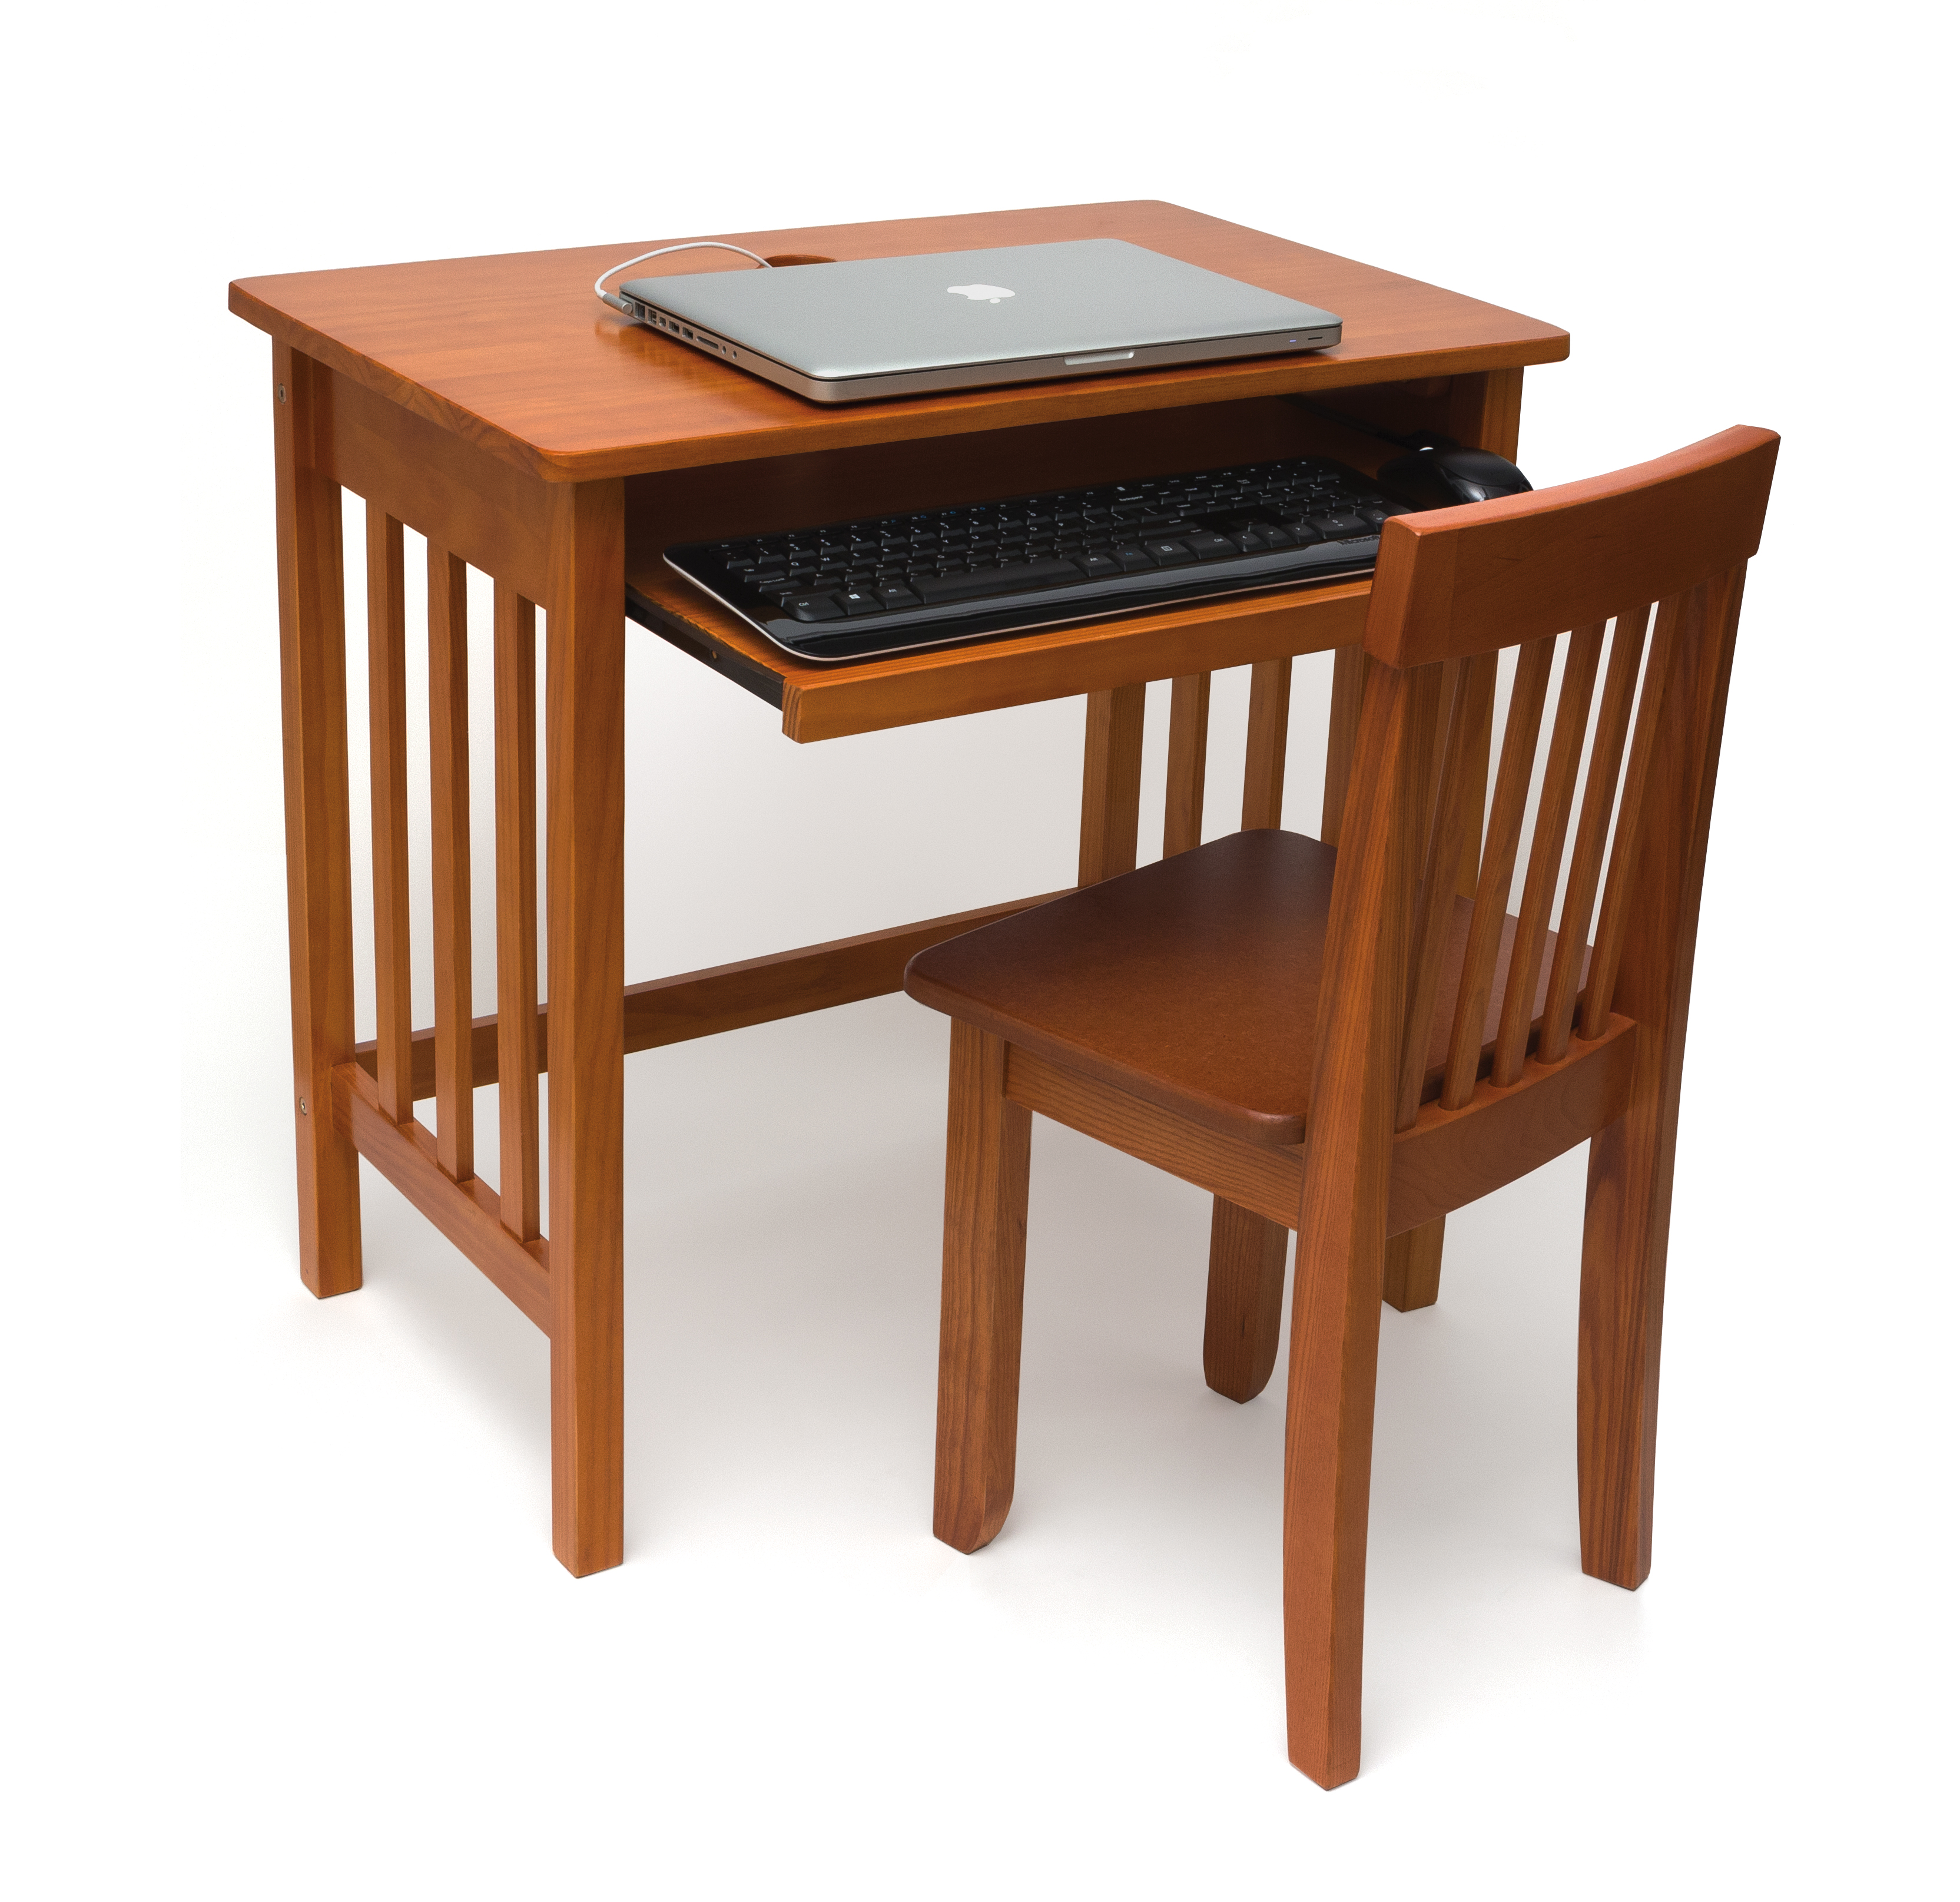 Lipper International Childs Computer Desk and Mystic